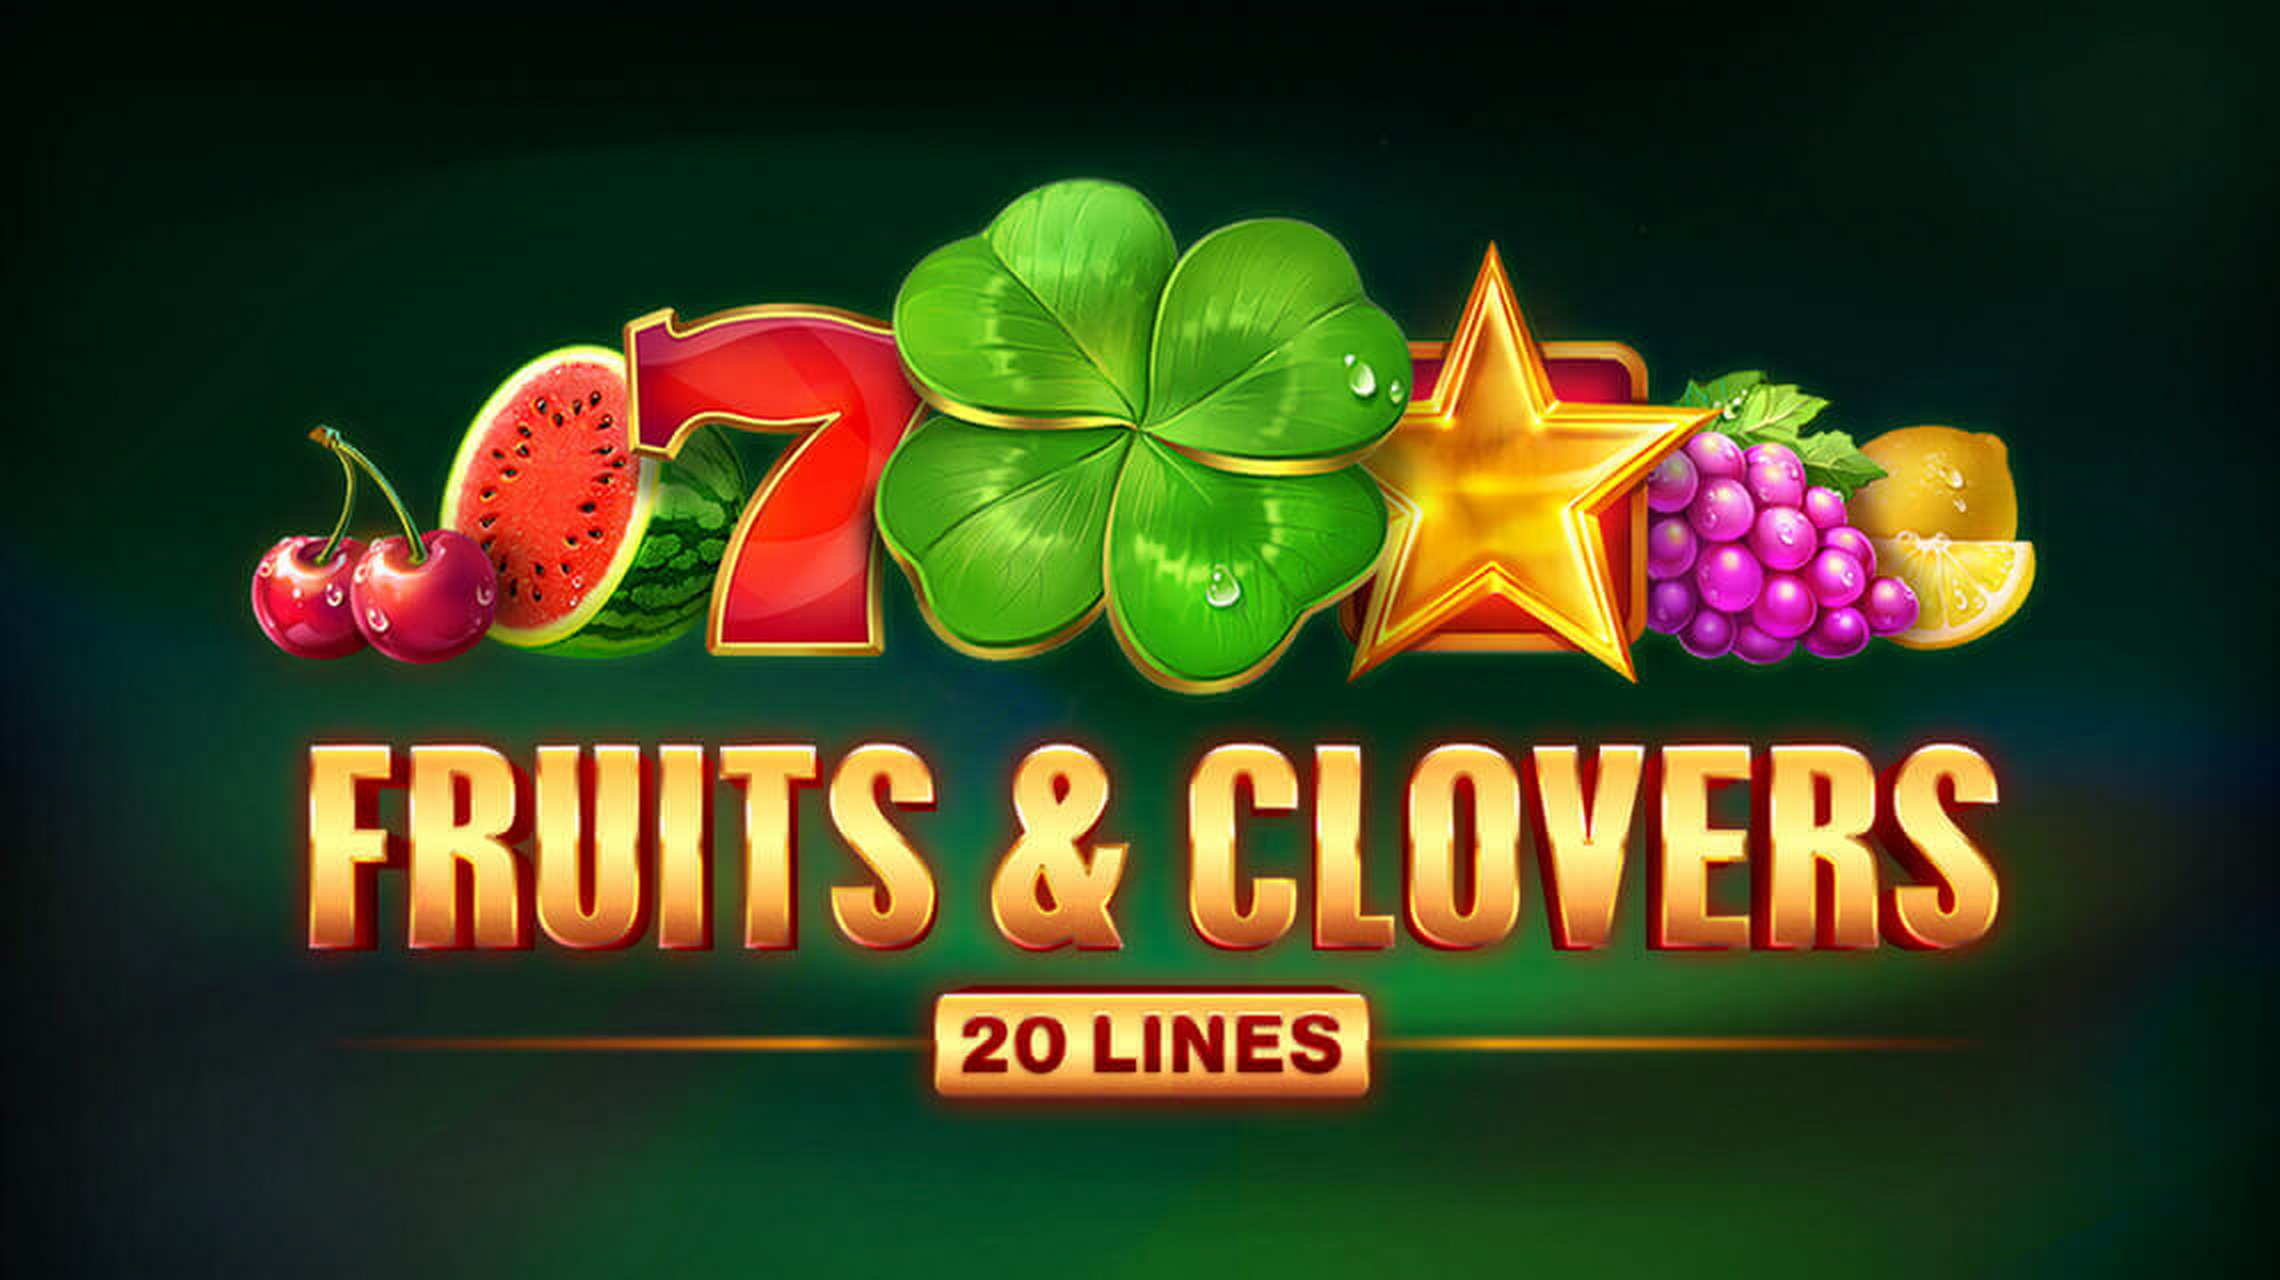 The Fruits & Clovers 20 lines Online Slot Demo Game by Playson